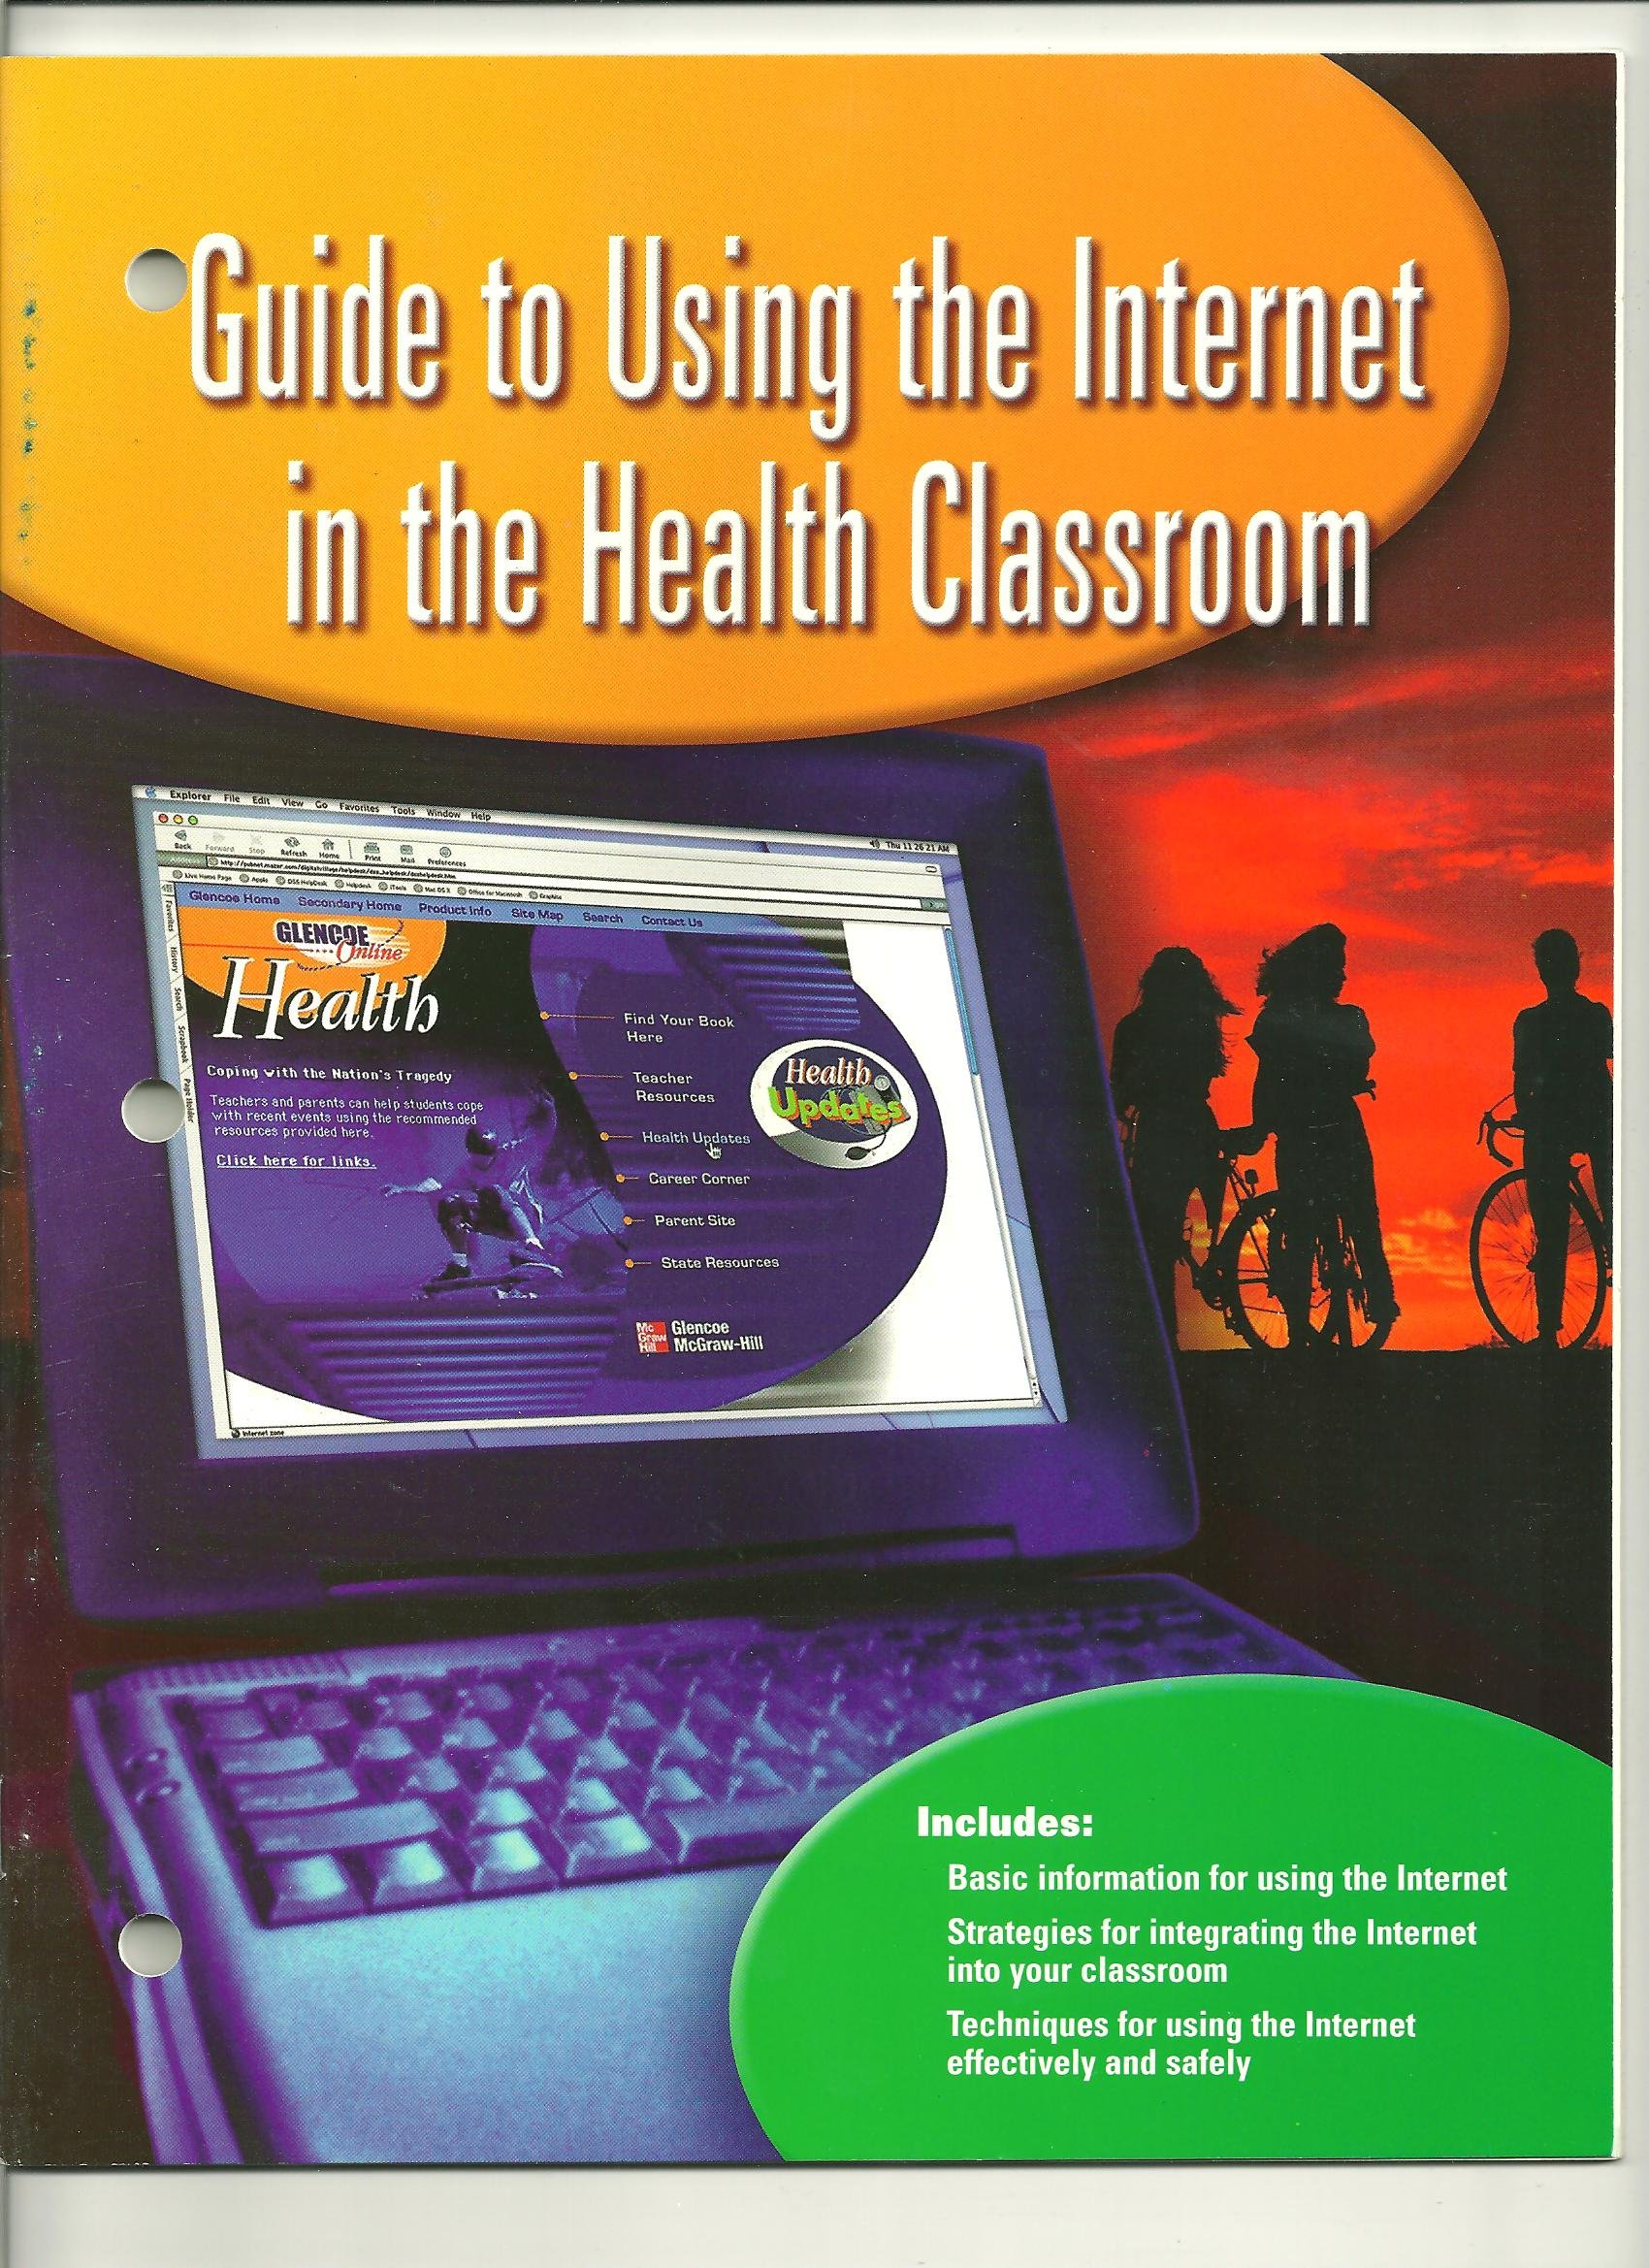 Teen Health Course 1, 2, and 3, Activities, Guide to Using the Internet in the Health Classroom PDF